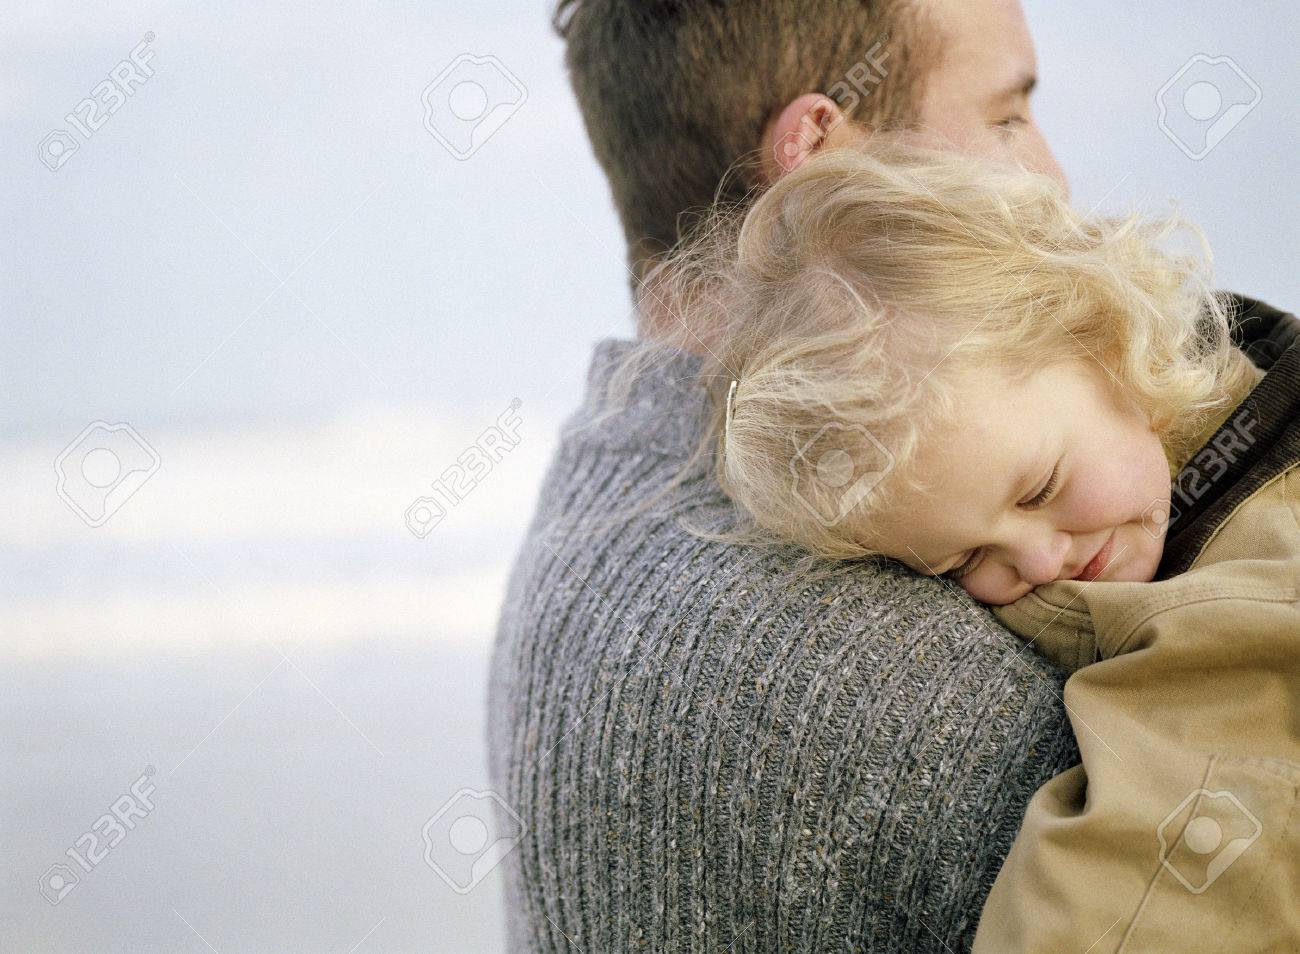 Little girl being carried on the beach by an adult male apparent figure. She has her head on his shoulder.